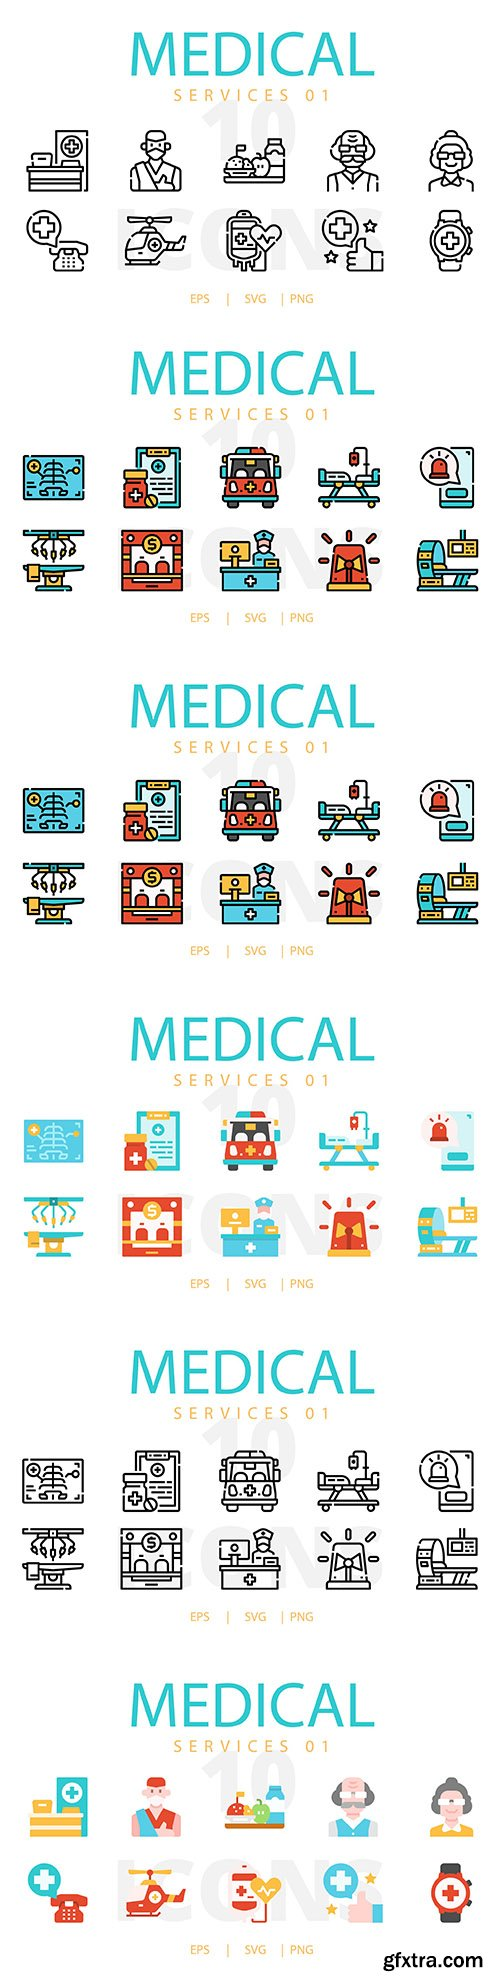 Medical service icons collection